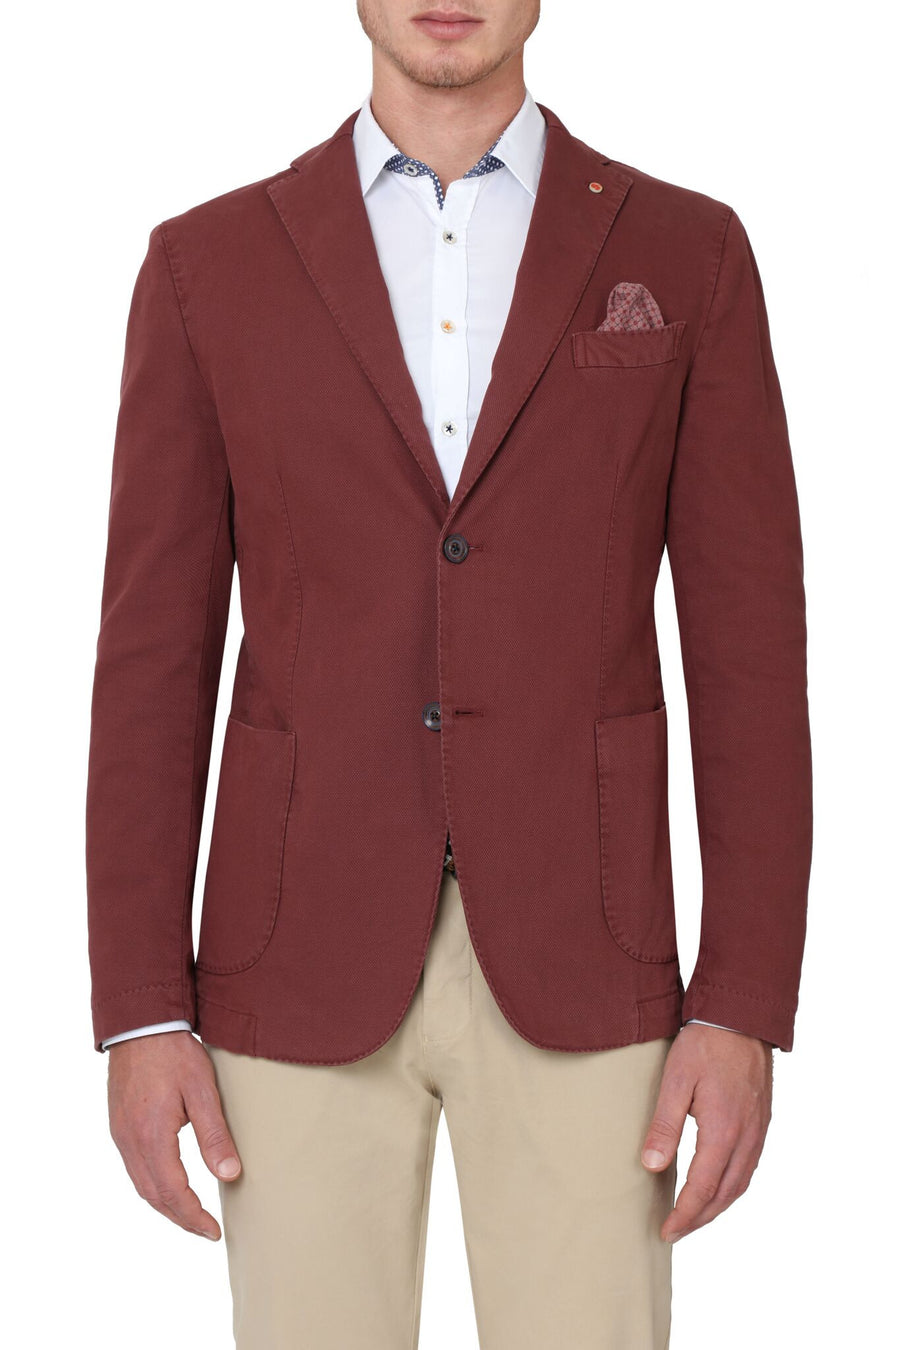 Jerry Key Cotton Sport Jacket in Bordeaux